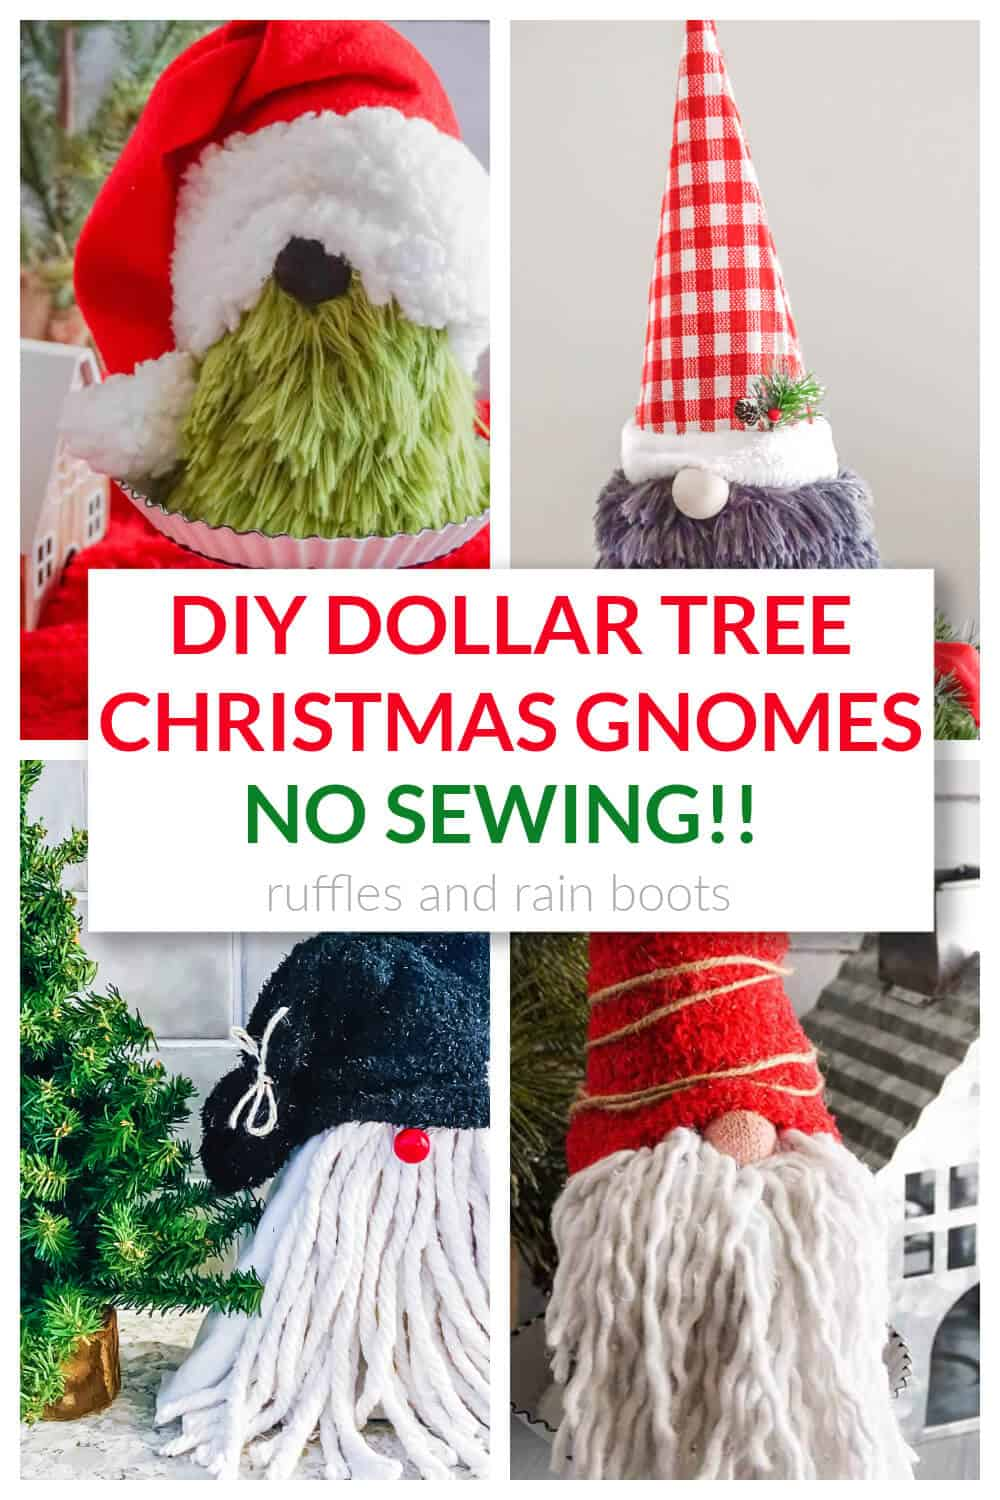 four holiday gnomes in a collage with text that reads diy dollar tree Christmas gnomes no sewing